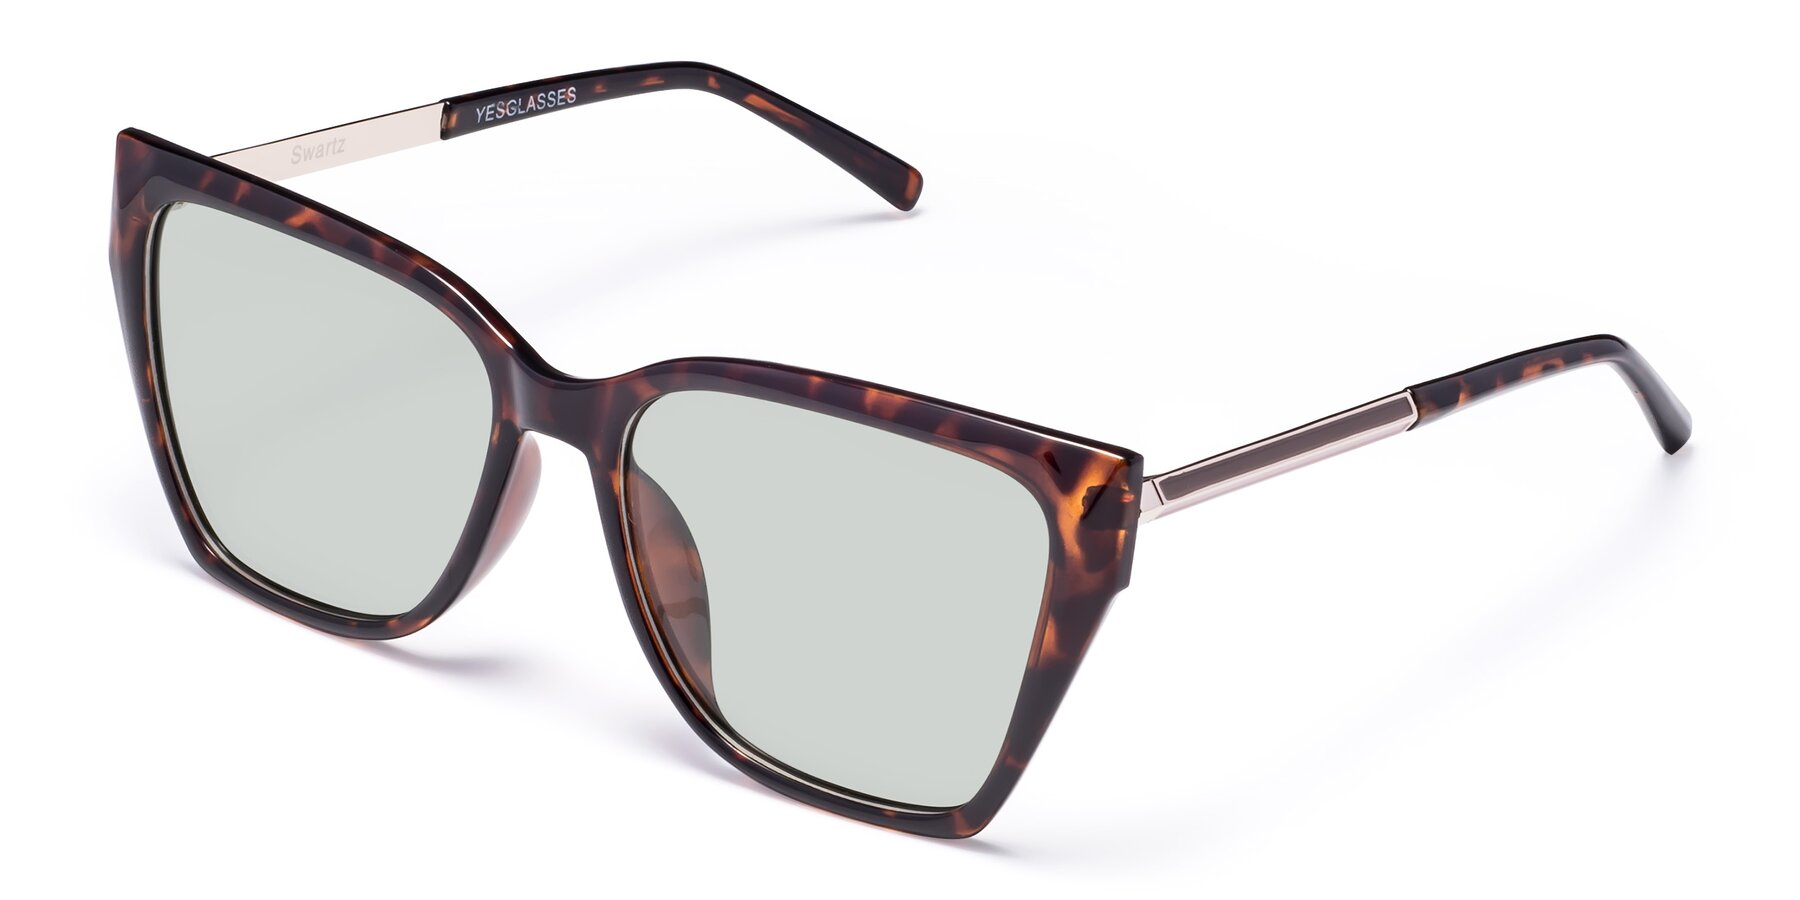 Angle of Swartz in Tortoise with Light Green Tinted Lenses